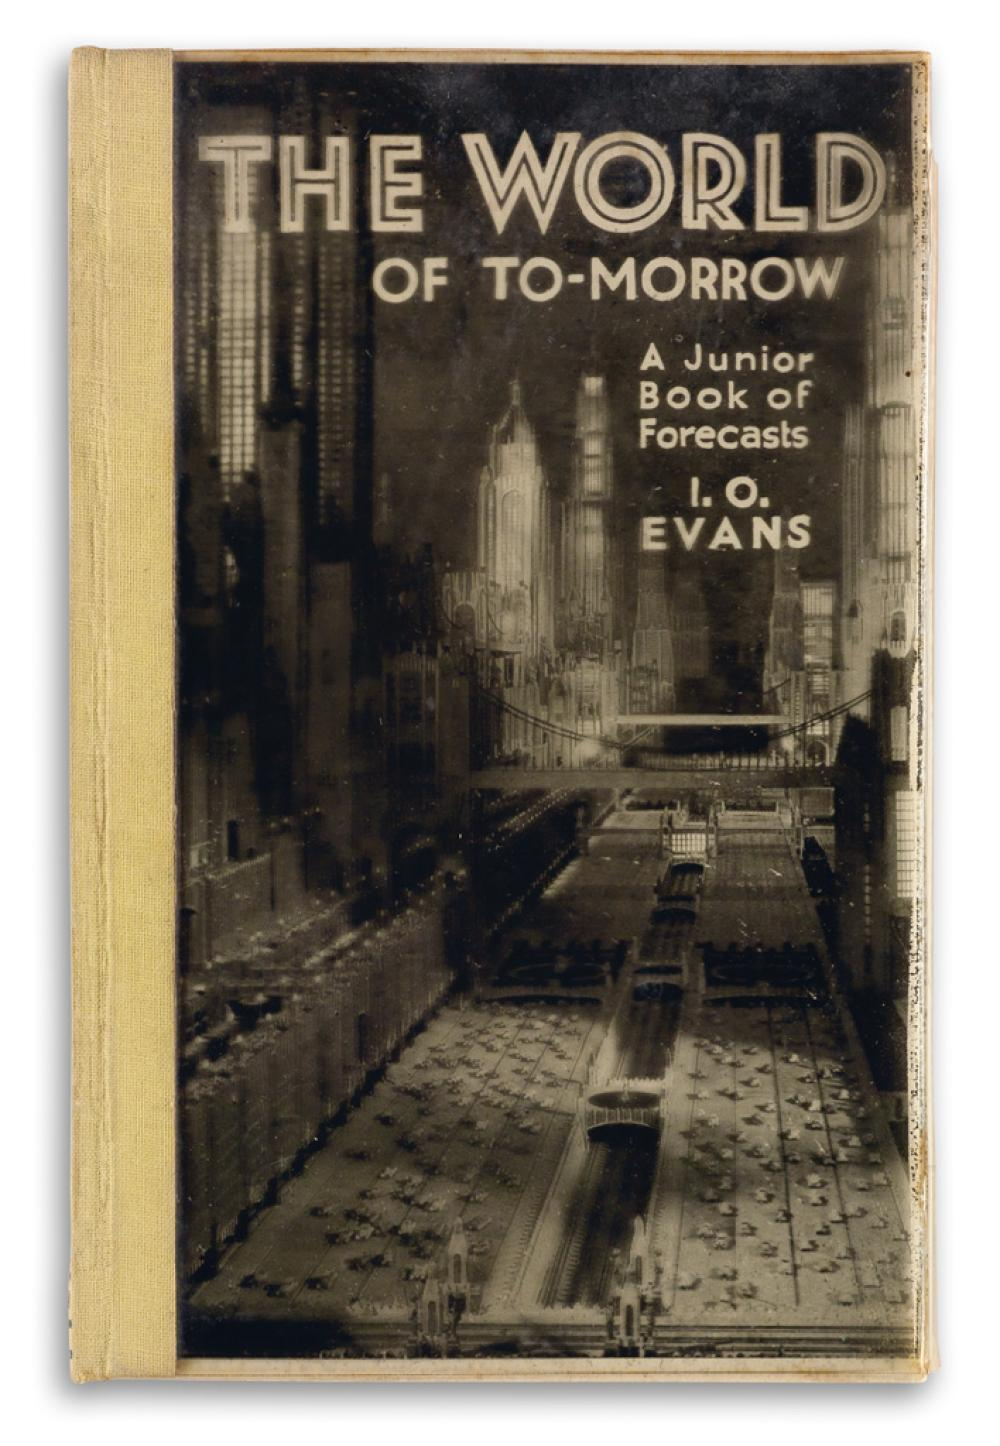 I.O. EVANS. The World of To-Morrow, A Junior Book of Forecasts.